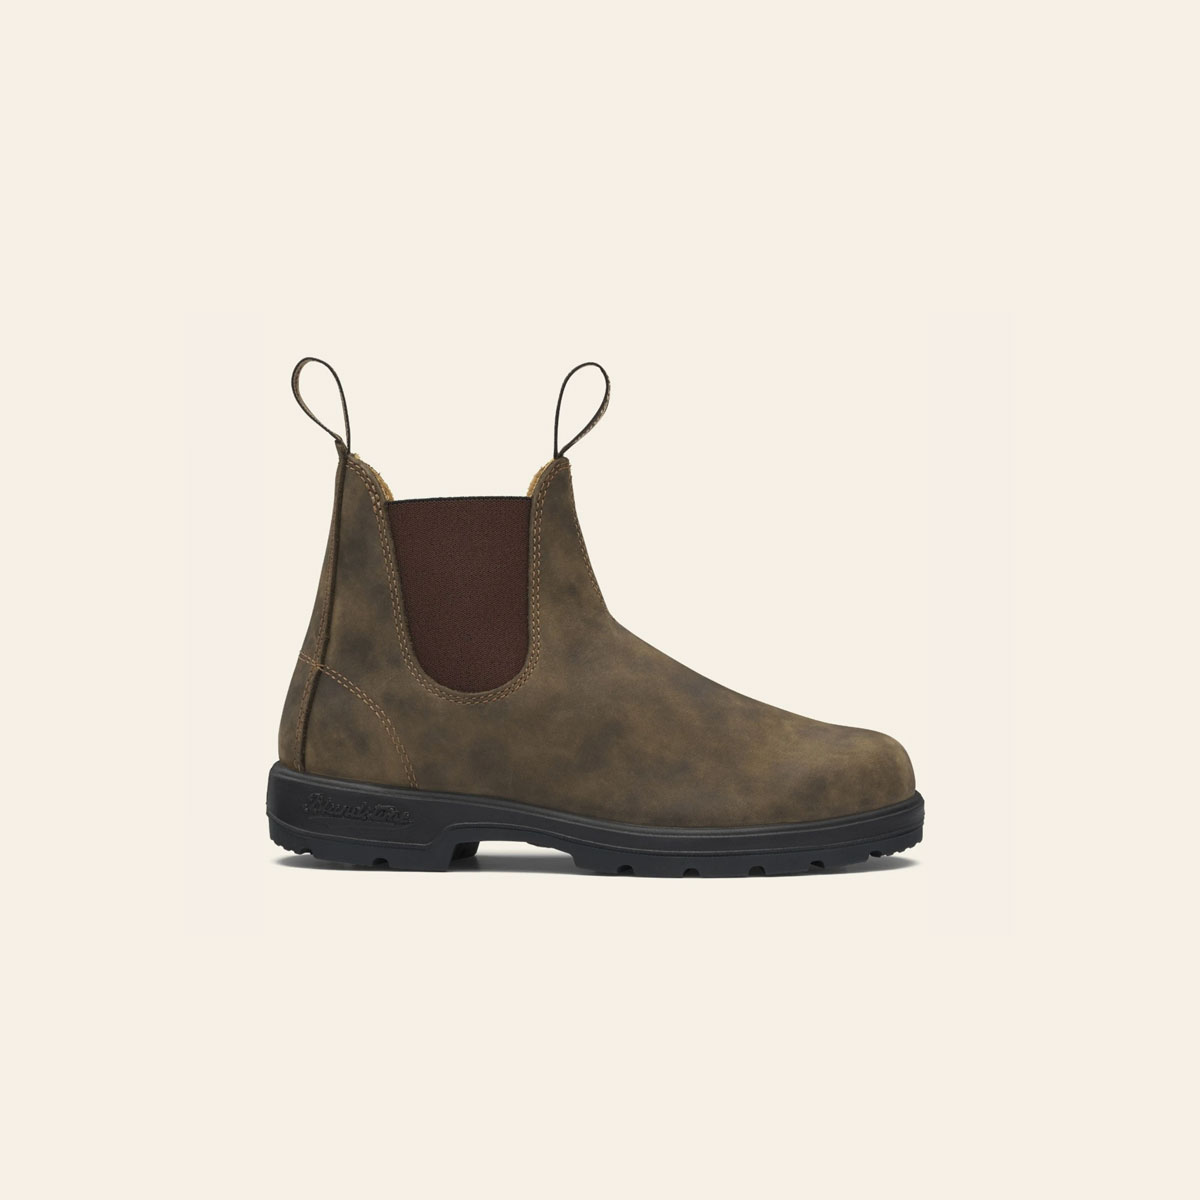 BLUNDSTONE Chelsea Boots 585 Rustic brown